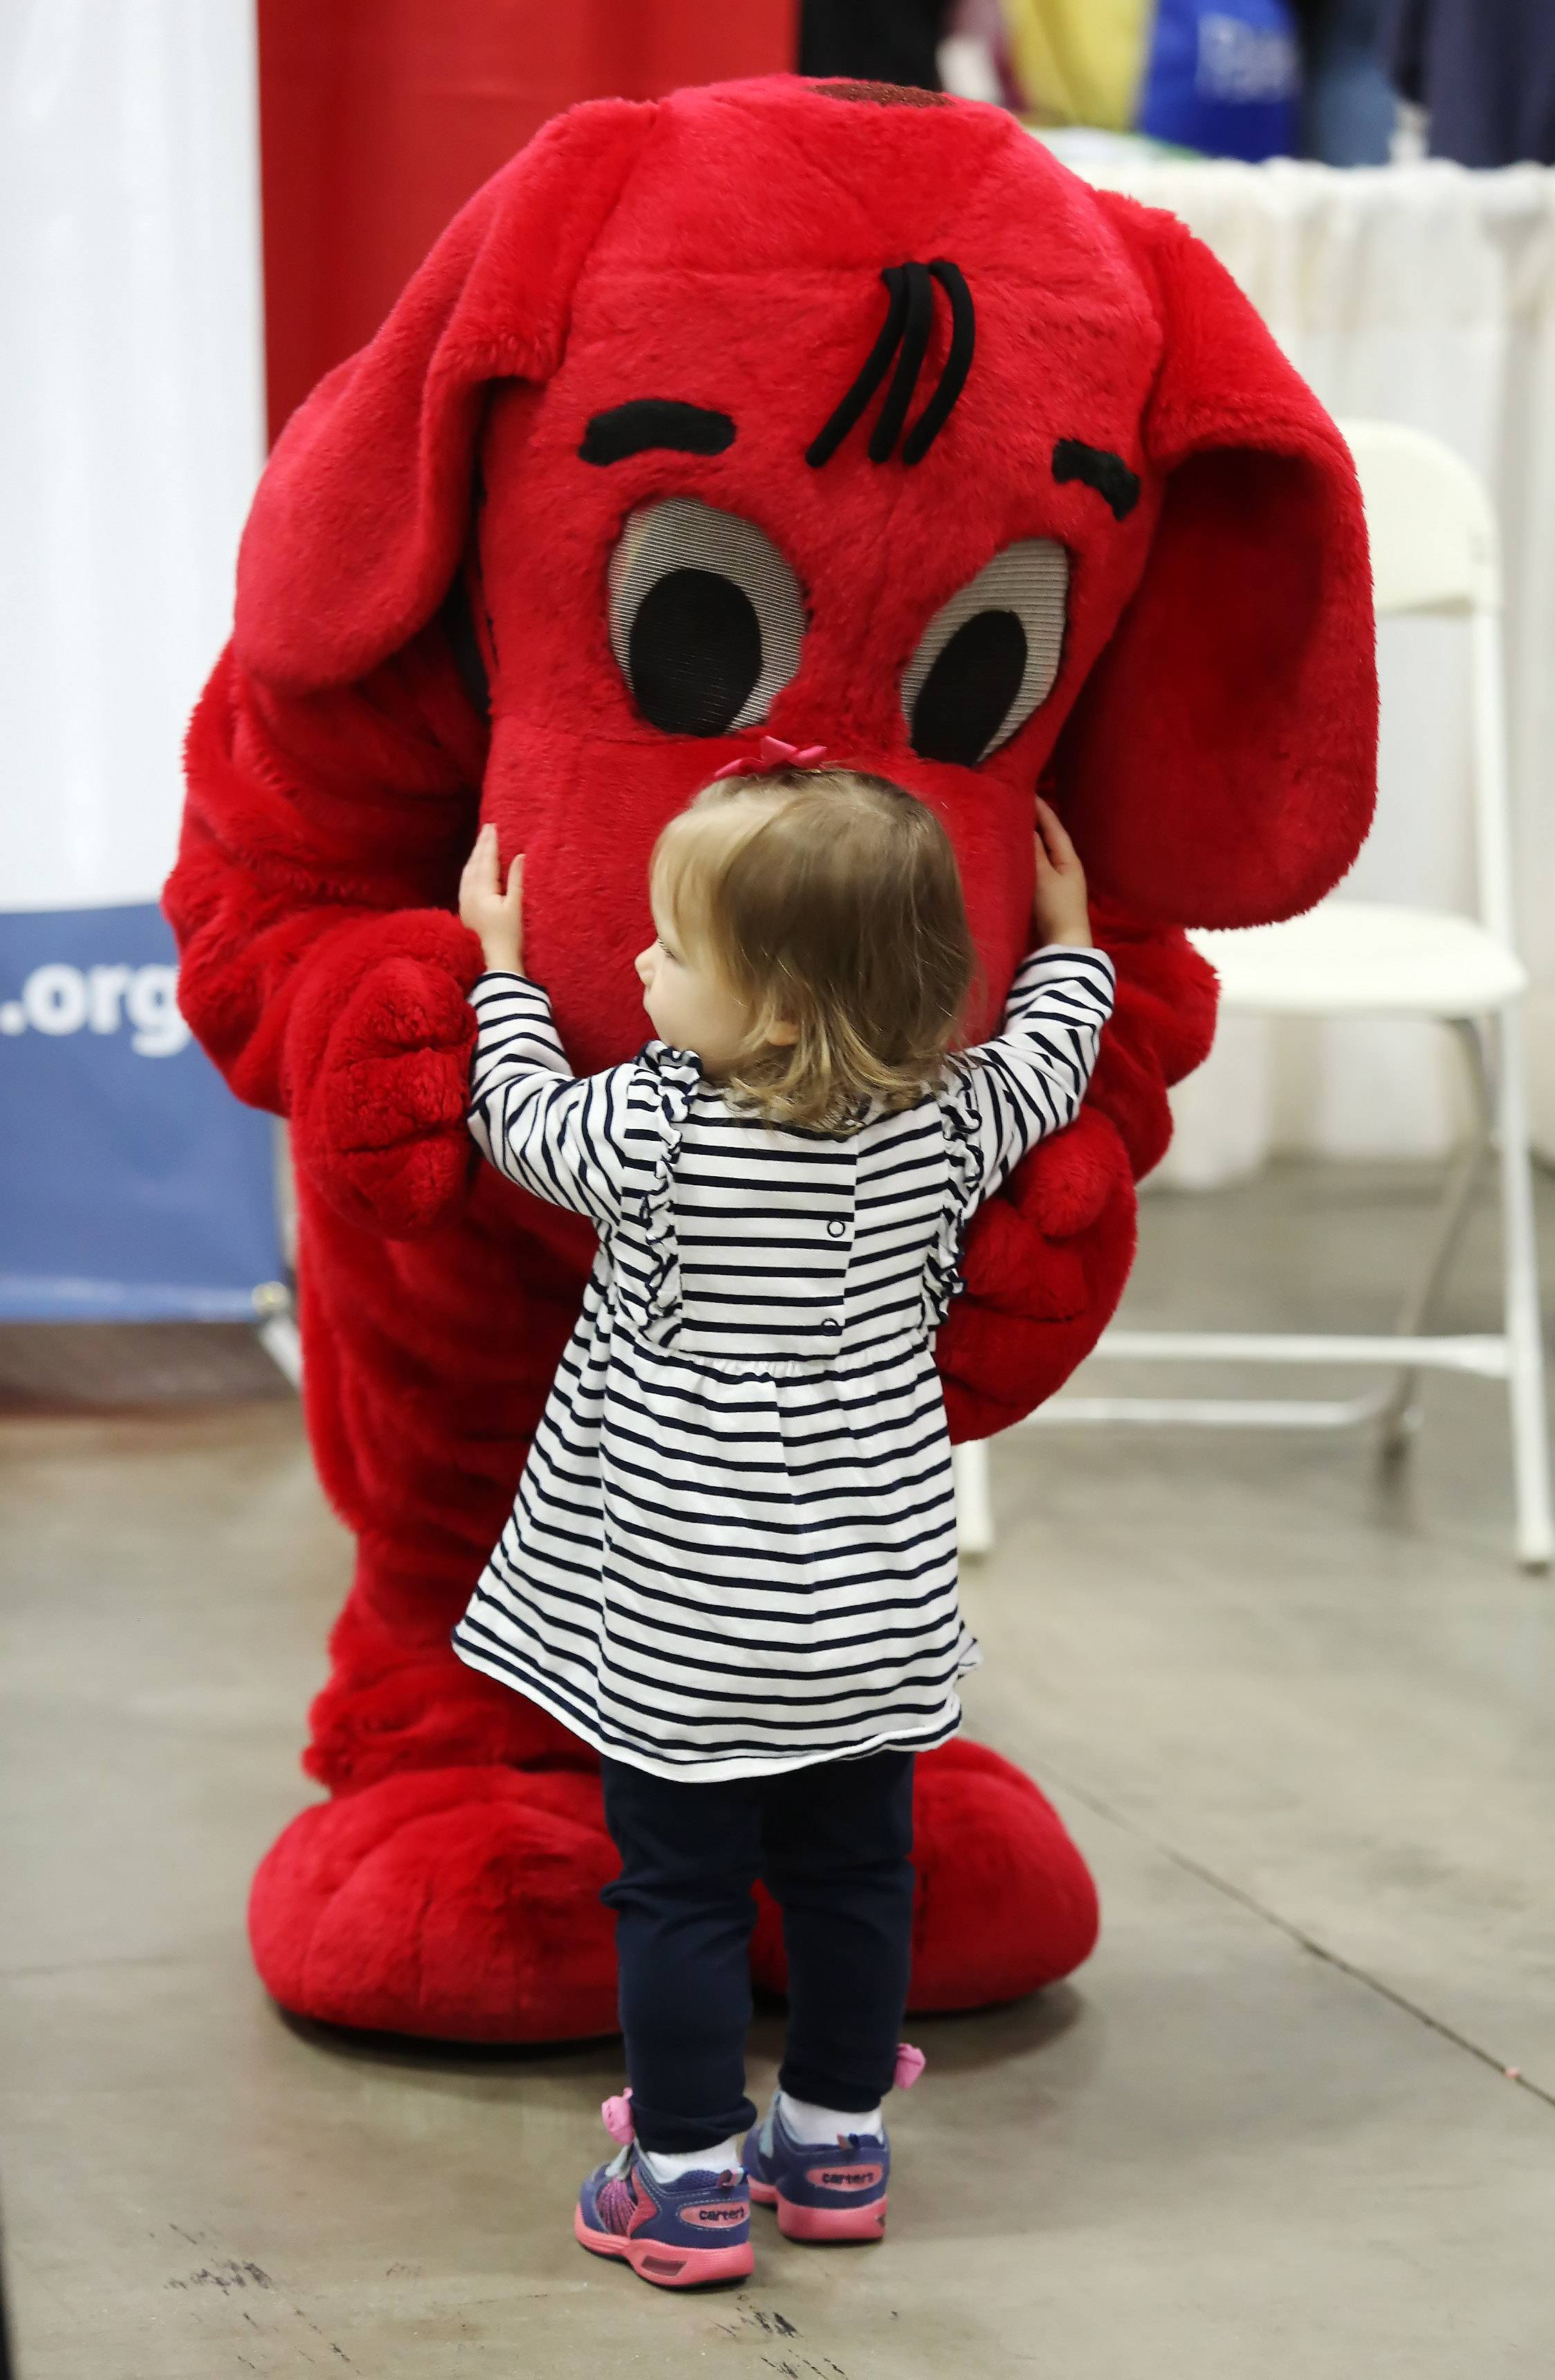 Eighteen-month-old Serena Ruggio of Palos Heights hugs Clifford the Big Red Dog at the Lakeshore Public Television booth Sunday during the 2014 Chicagoland Kids Expo & Fun Fair at the Schaumburg Convention Center. Bright Start College Savings sponsored the 12th annual event that featured 100 vendors, amusement rides, video games and family-friendly entertainment.